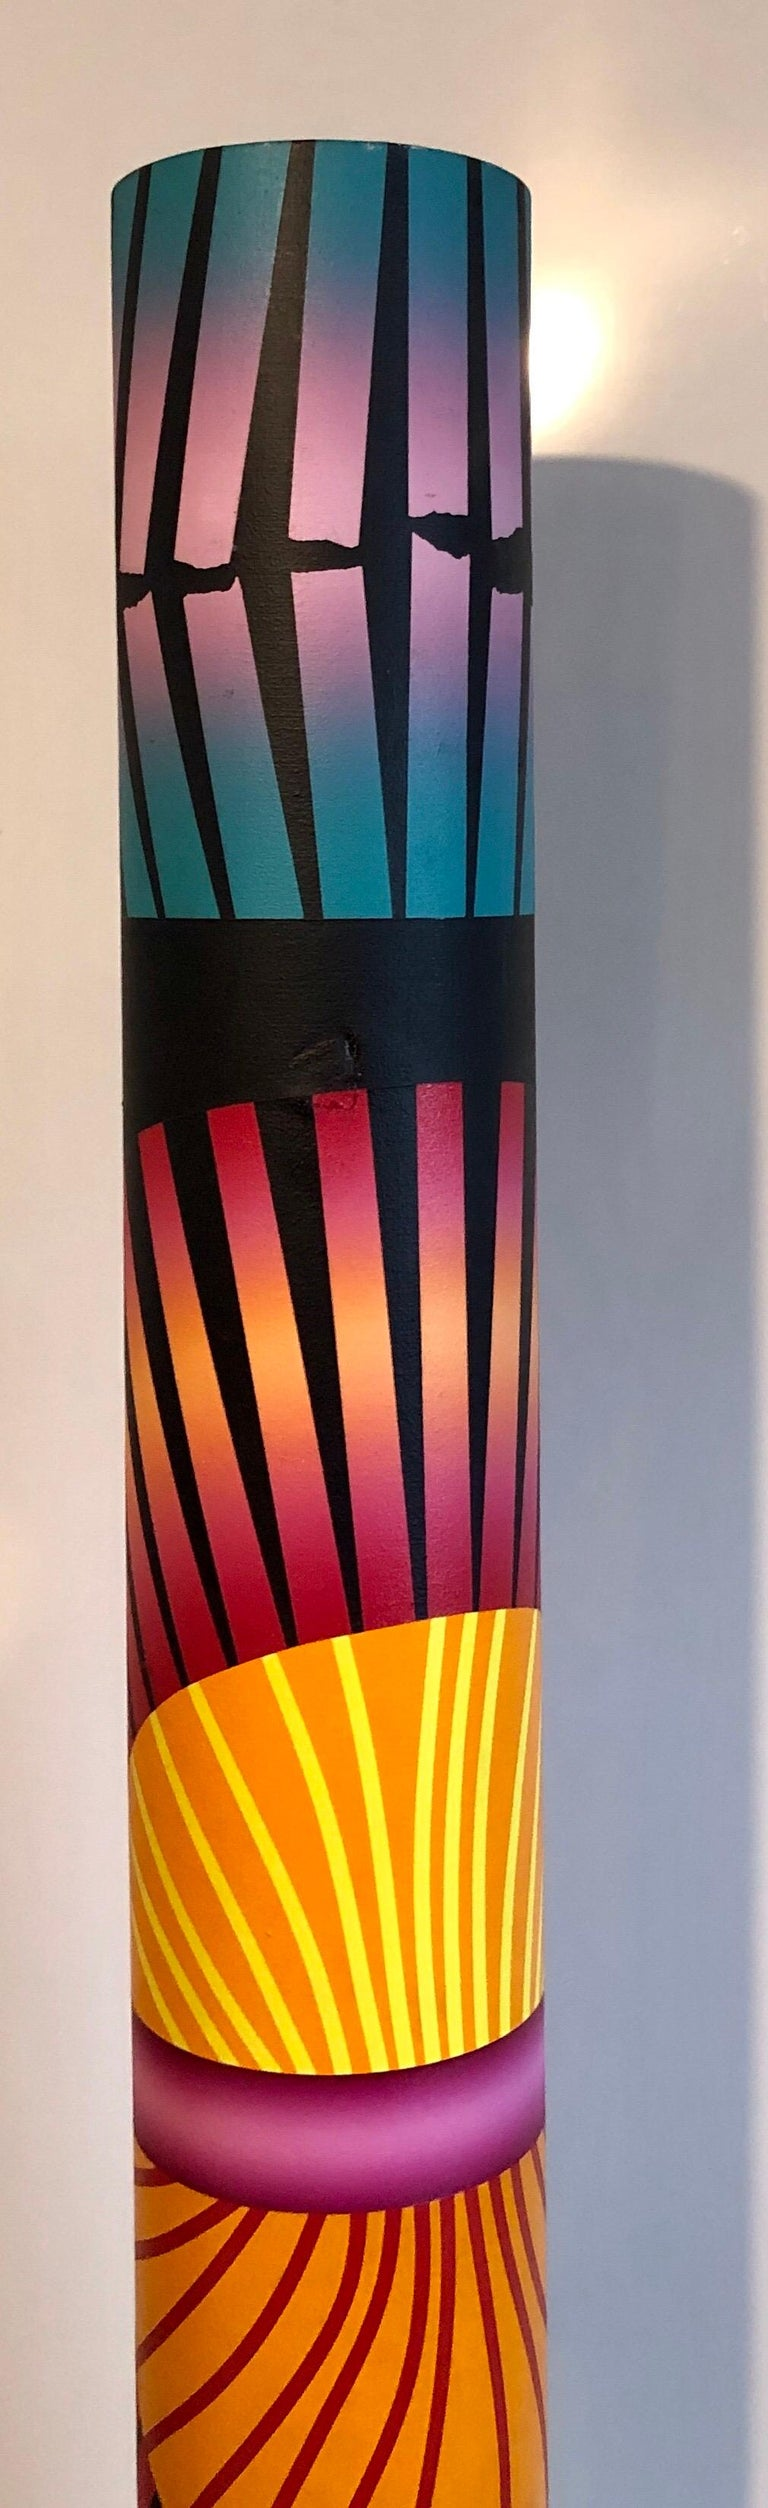 George Snyder Abstract Painting - Abstract Geometric Shaped Canvas Painting Sculpture Memphis Milano Era 1980s Art